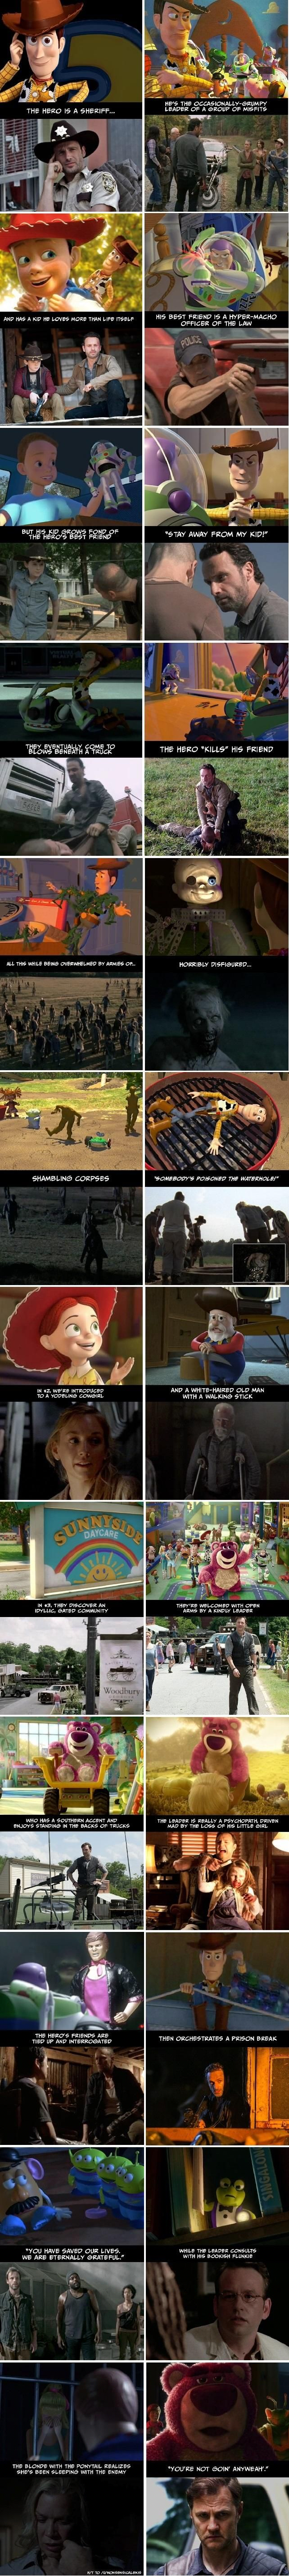 """Undeniable Proof That """"The Walking Dead"""" And """"Toy Story"""" Have The Exact Same Plot - qm stories & news."""